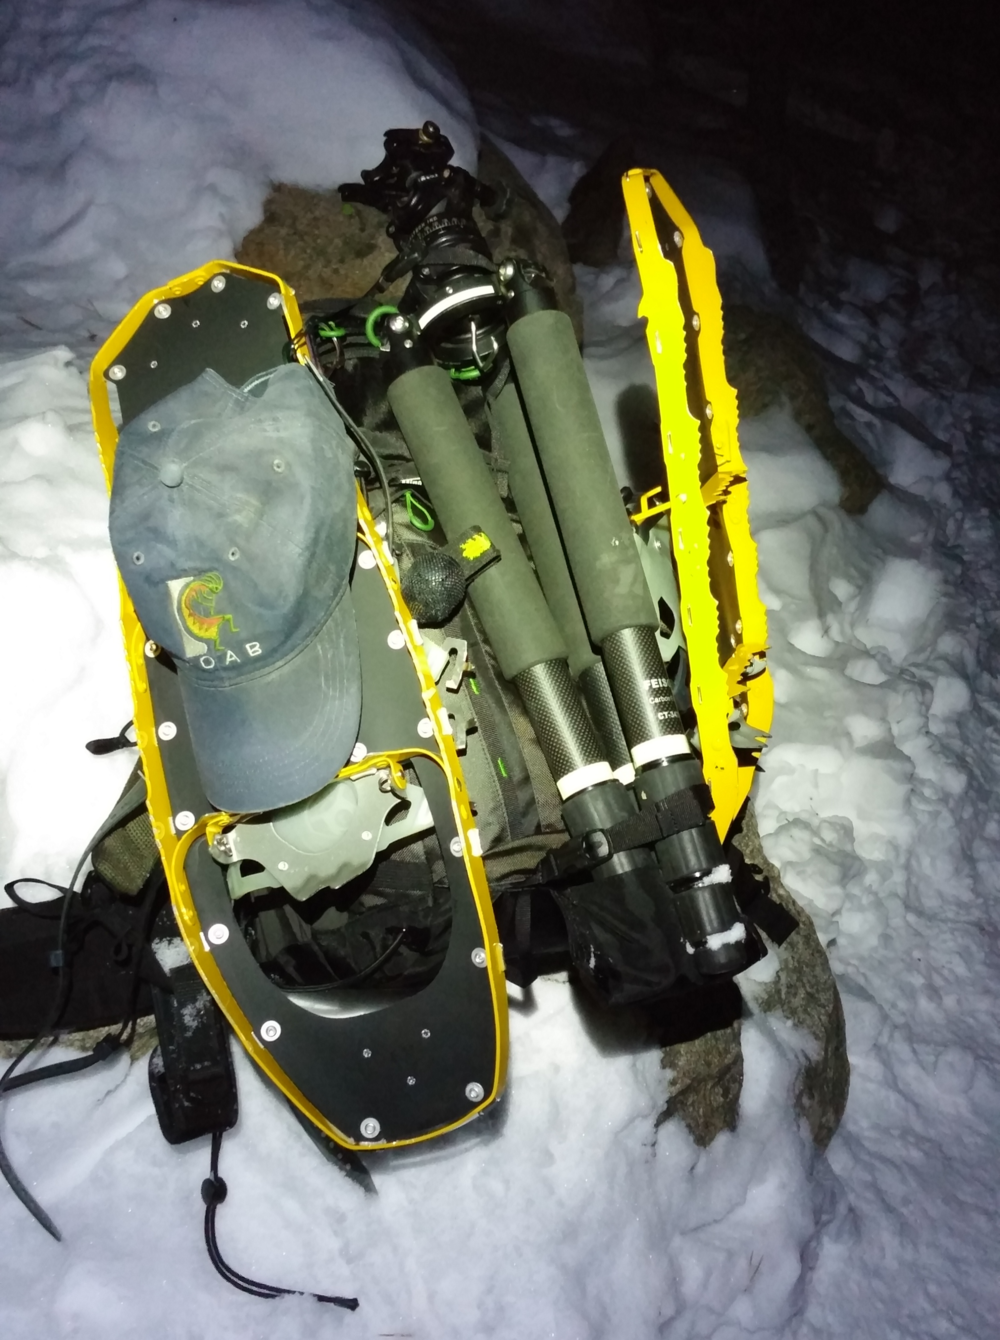 Mike has a tripod hanging on the back middle of the Backlight 26L and snowshoes on the sides.